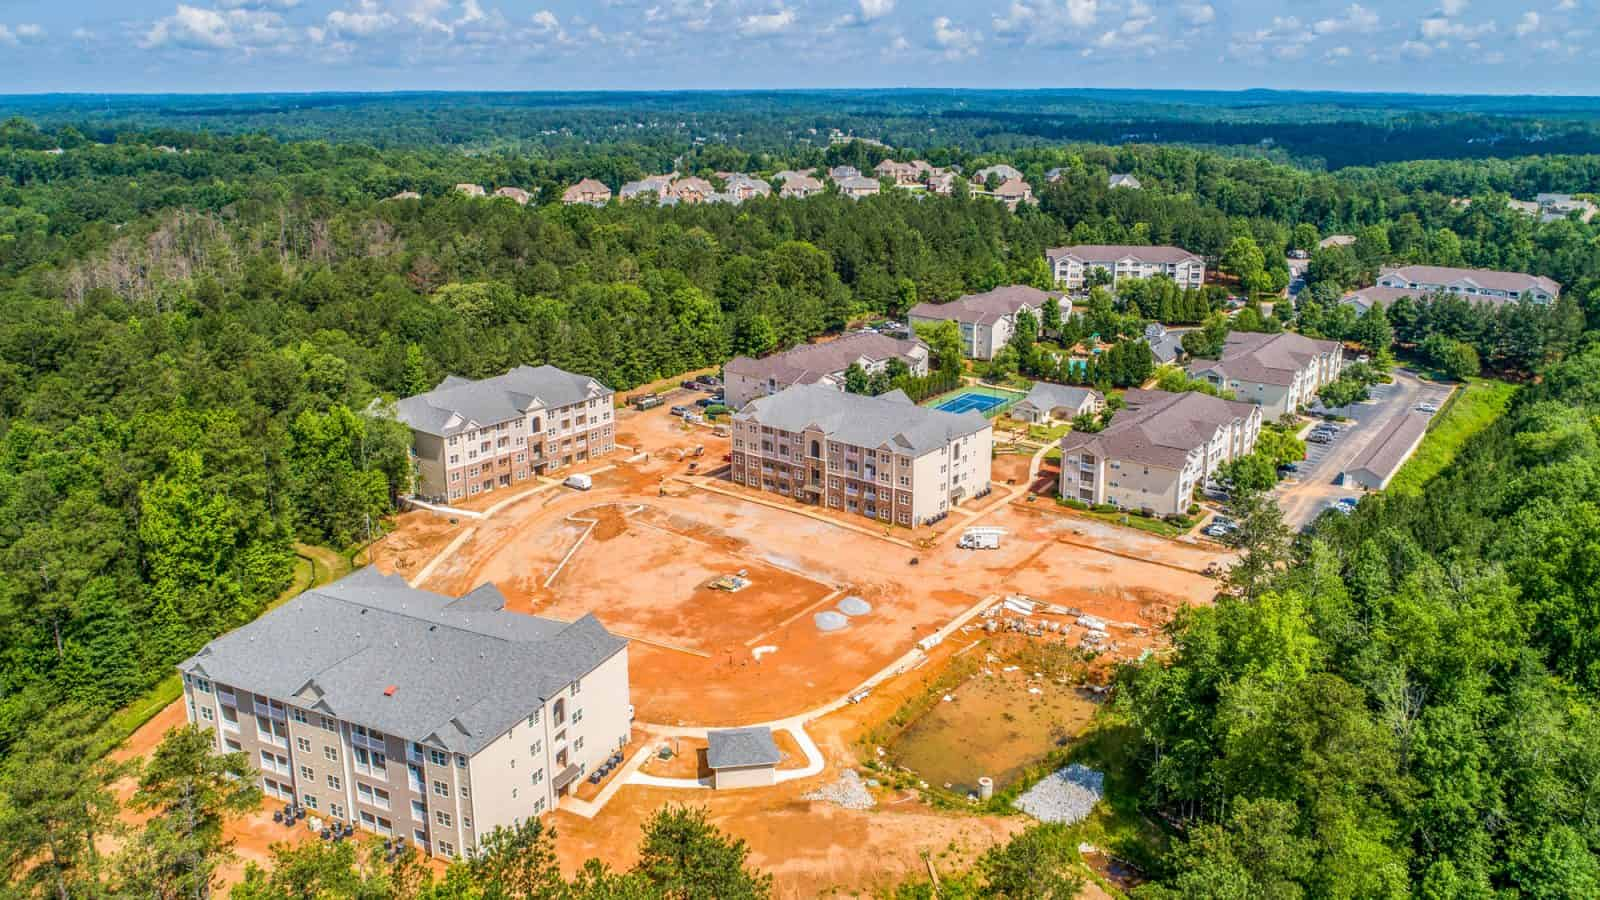 aerial drone photo of apartment complex under construction in Georgia